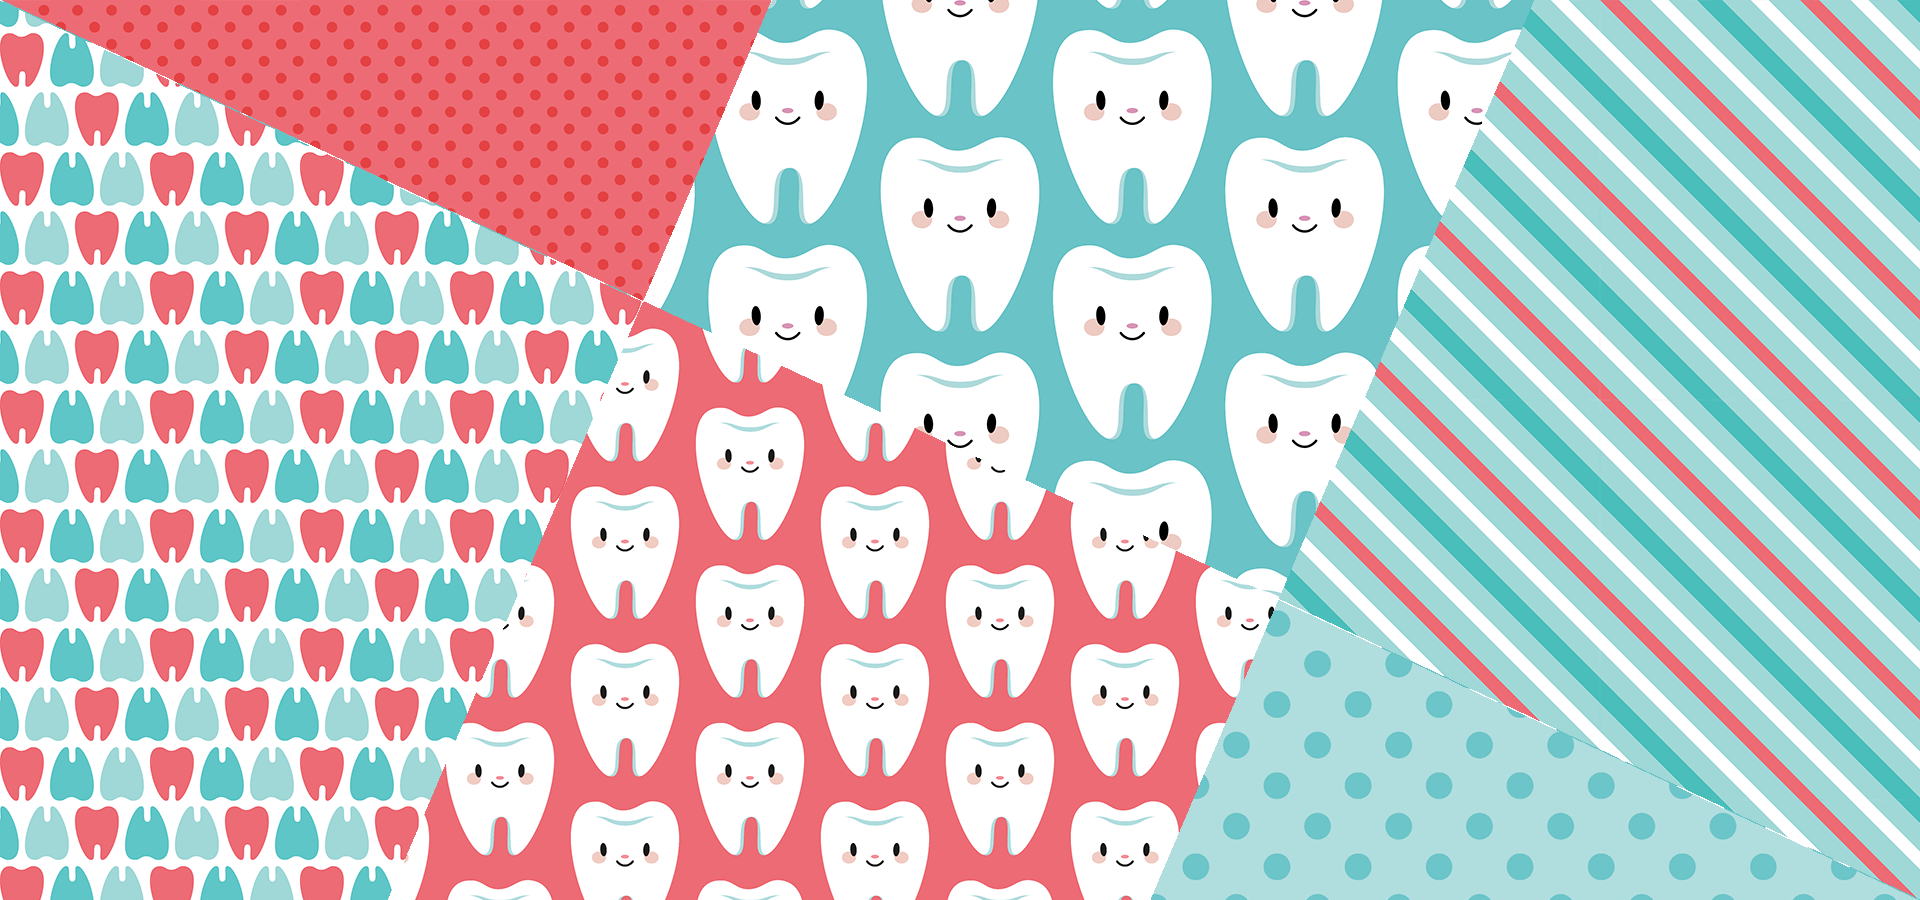 cute molar teeth patterns collection